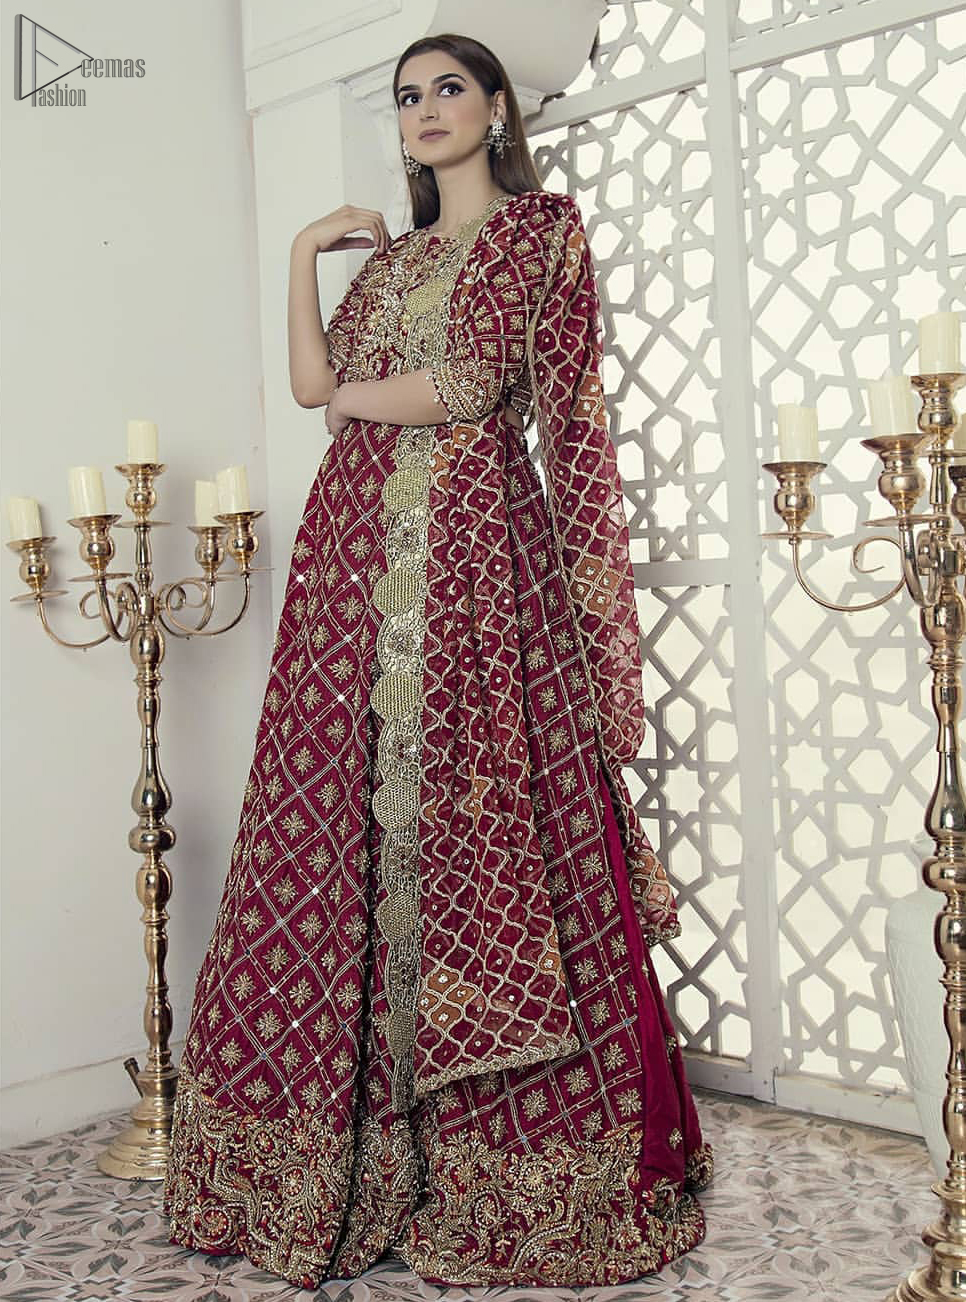 Maroon fully embroidered blouse cross-check lehenga n dupatta. This outfit is Crafted with love and classically designed to make your memorable day beautiful as it should be. This blouse comes with cross-check embroidery pattern lehenga. This lehenga dress is timeless and elegant with a touch of modern trend!